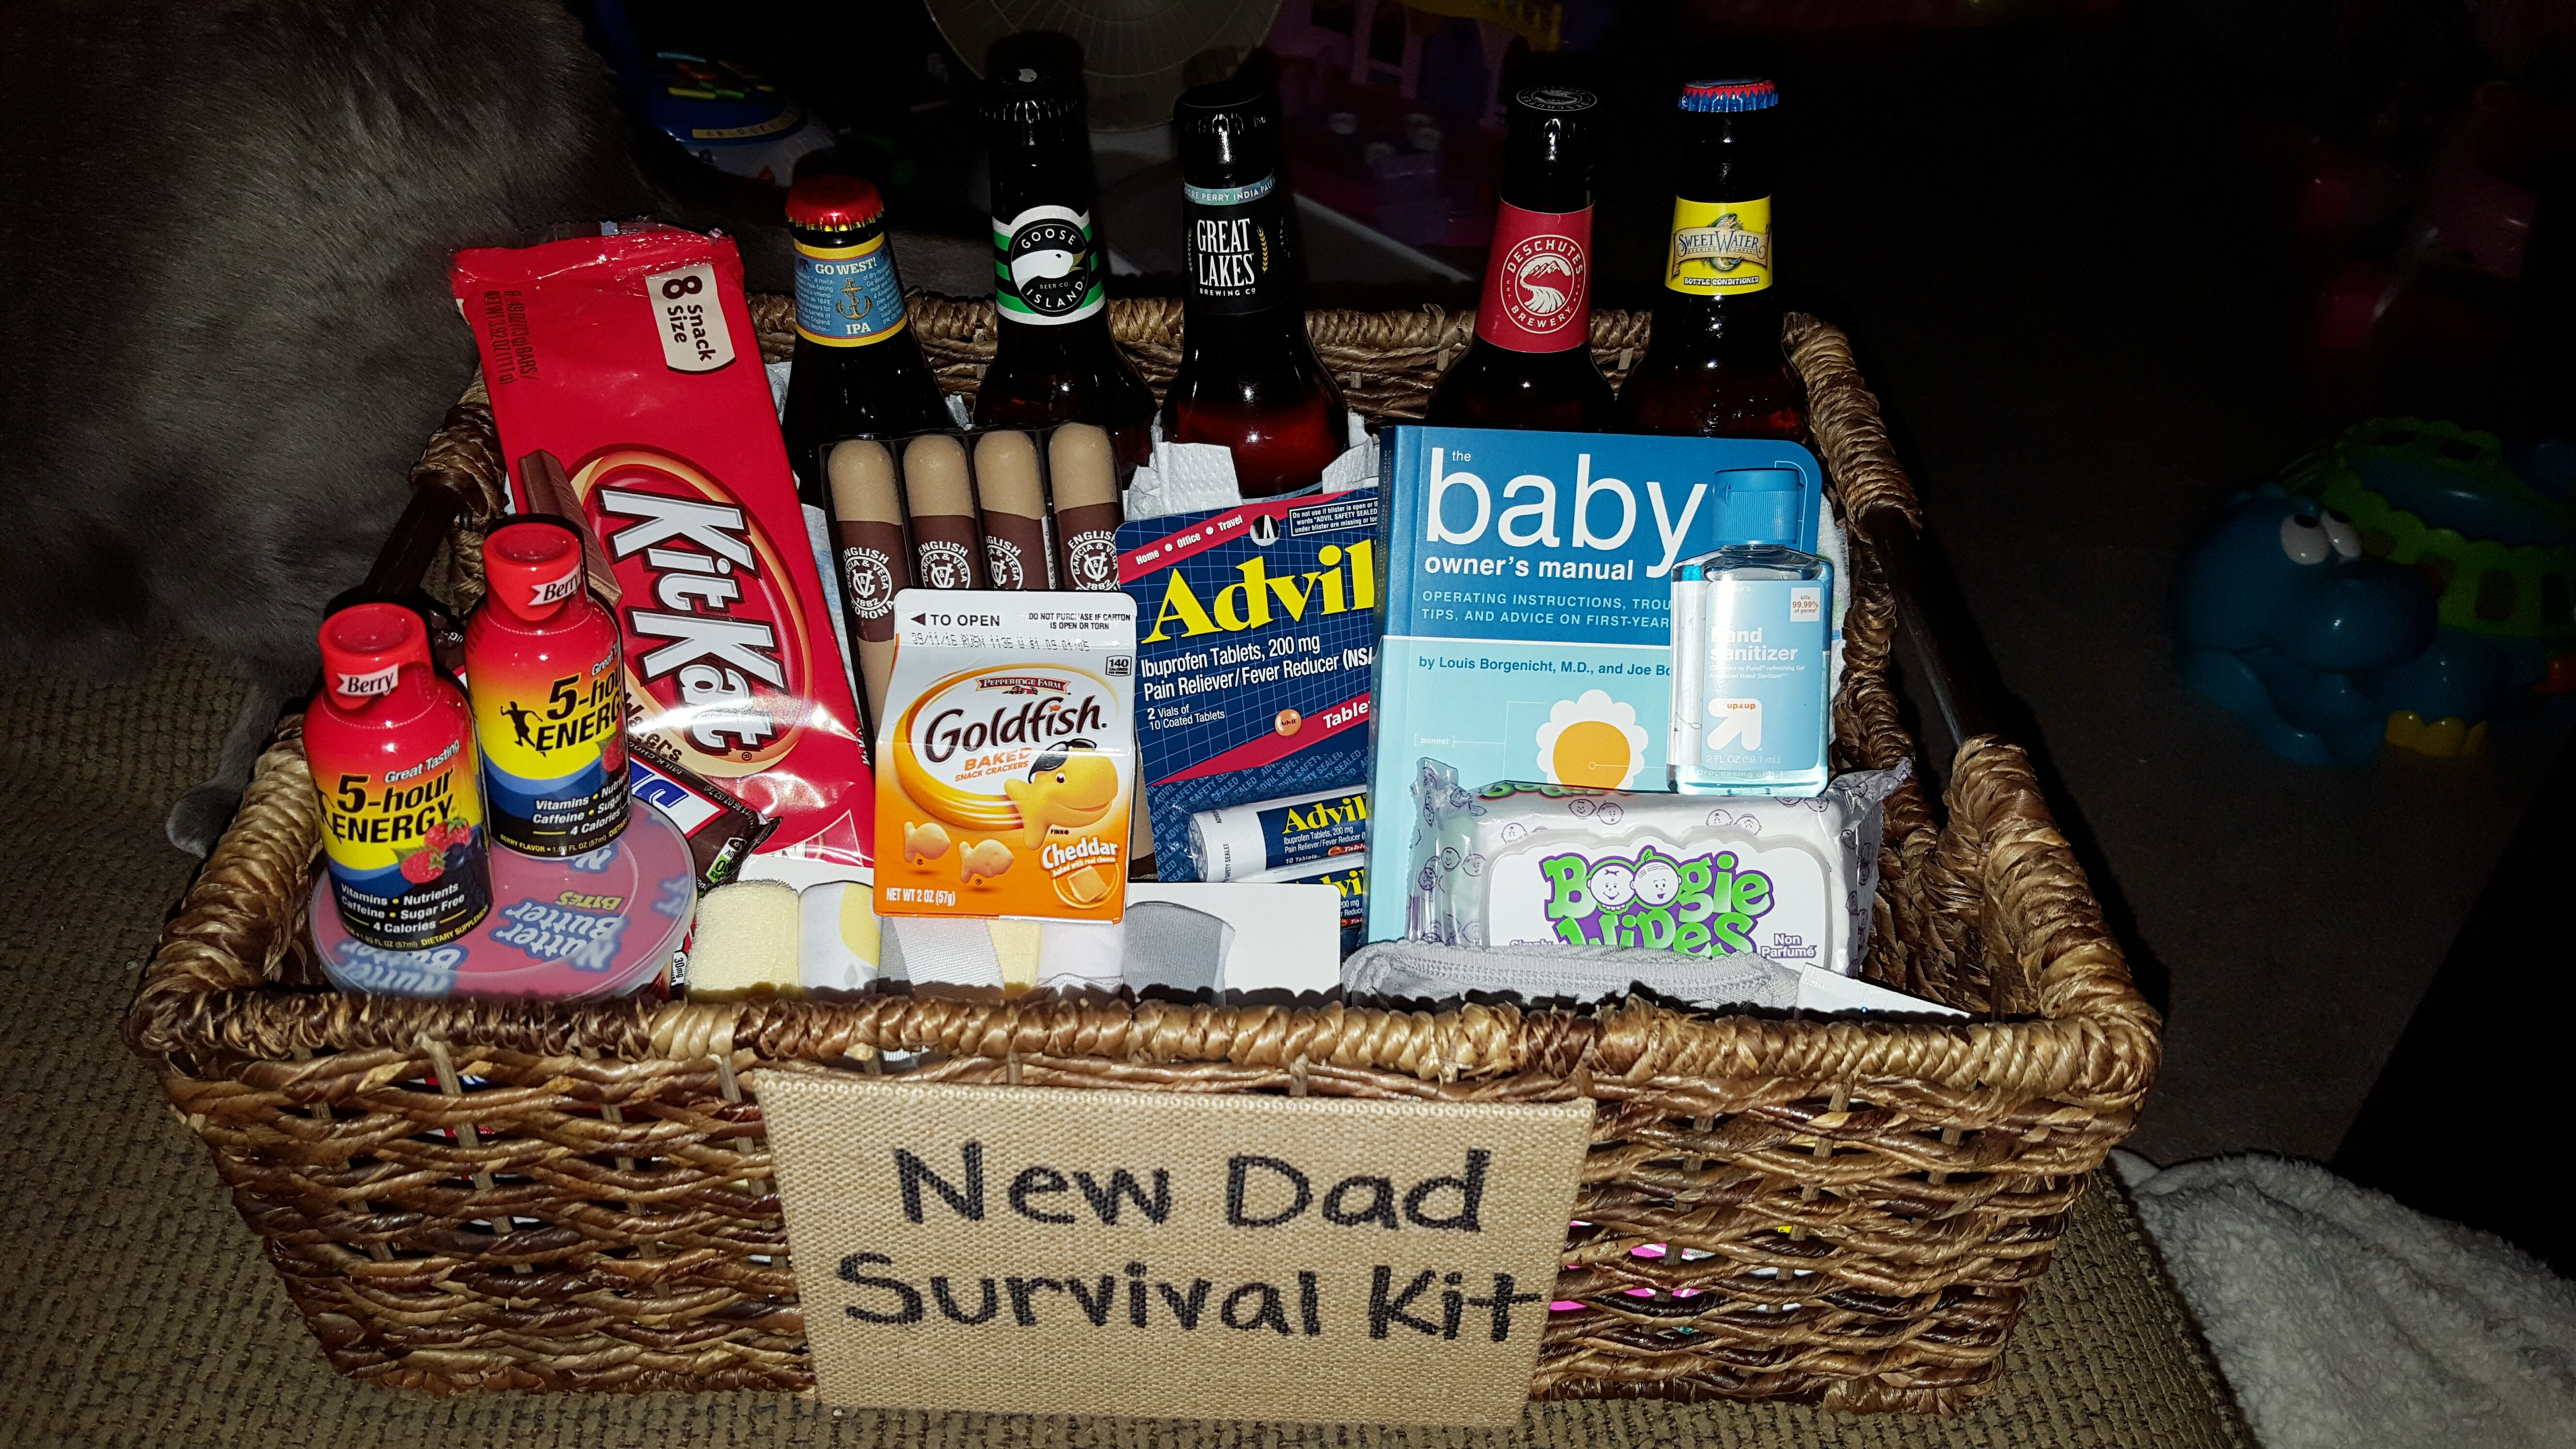 New Dad Survival Kit Snacks Candy 5 Hour Energy Beer Cigars